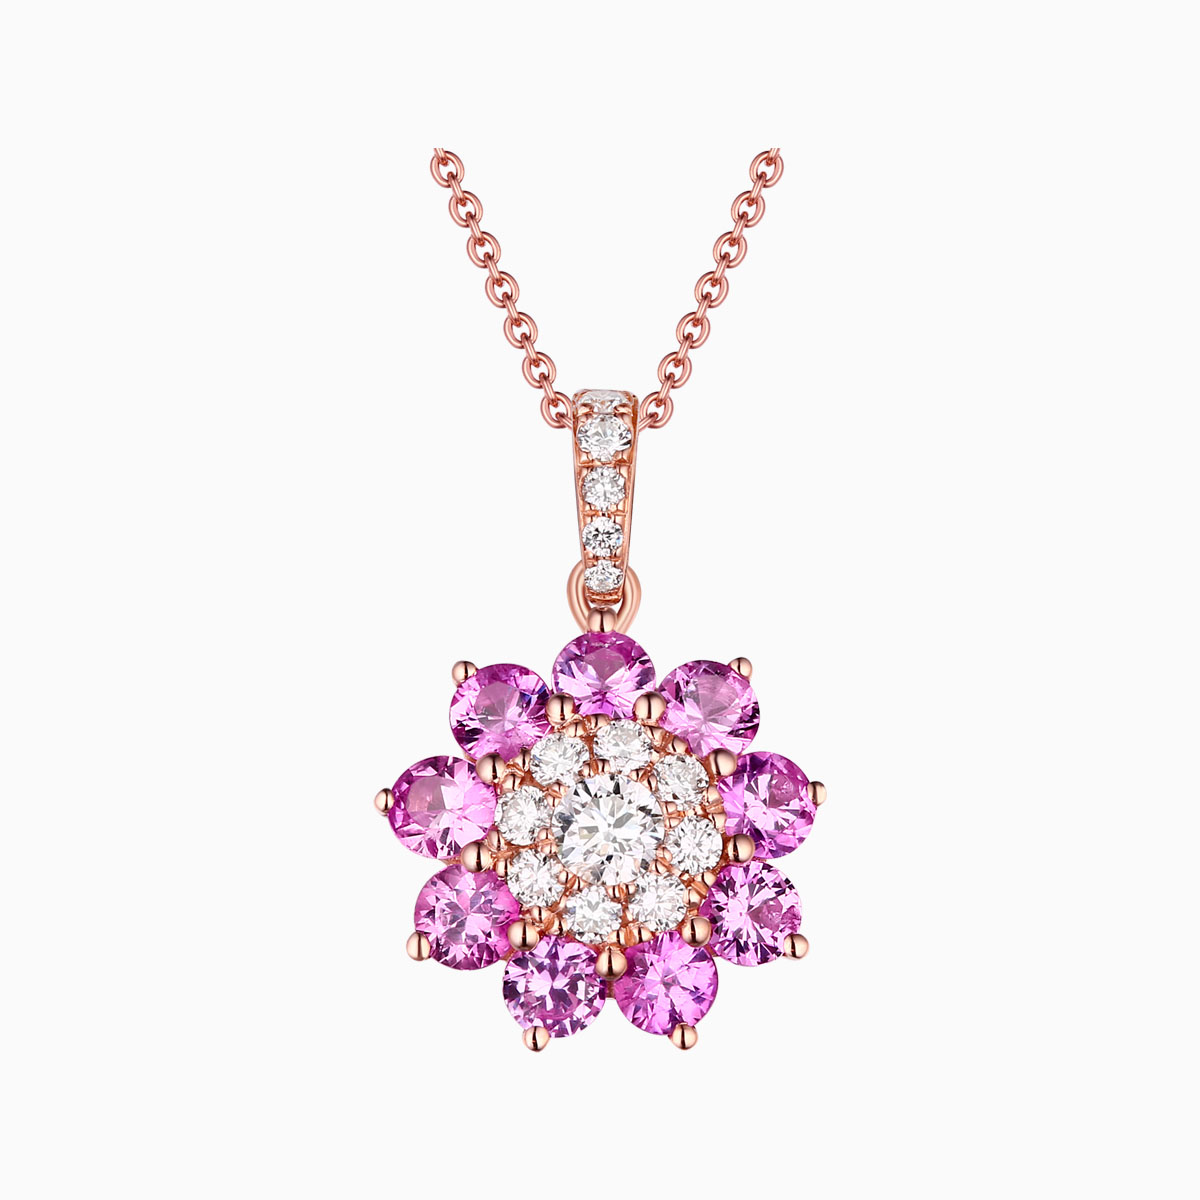 P22036WPS –  14K Rose Gold Diamond Pendant, 1.14 TCW